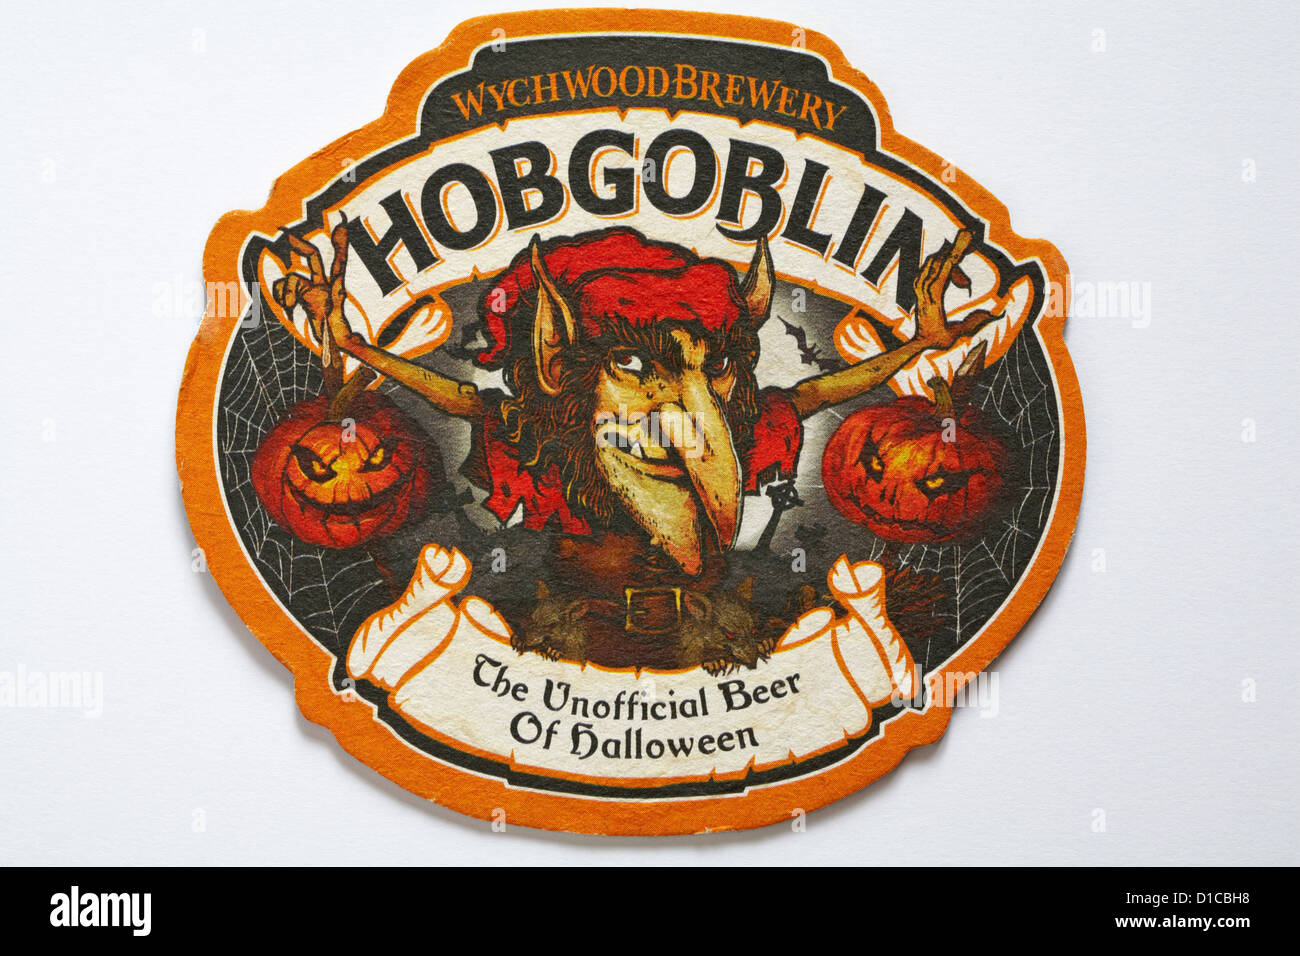 Beer mat Wychwood Brewery Hobgoblin The Unofficial Beer of Halloween isolated on white background Stock Photo